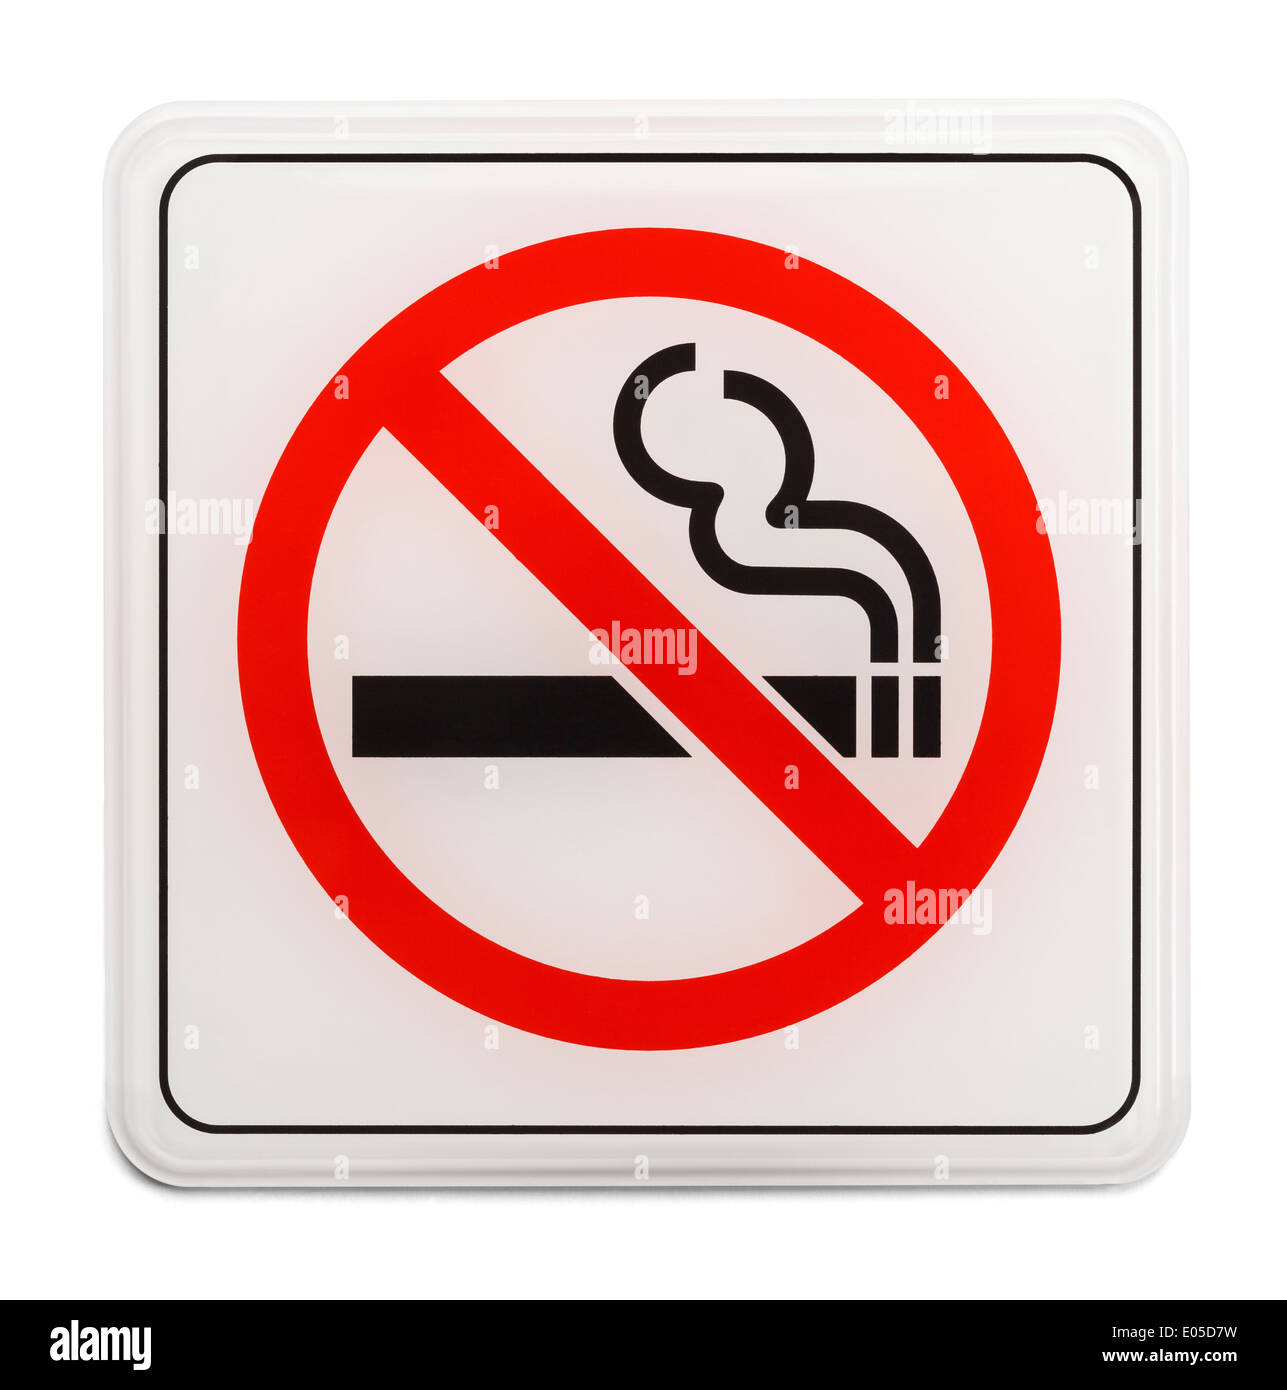 square red and black no smoking sign isolated on white background stock image